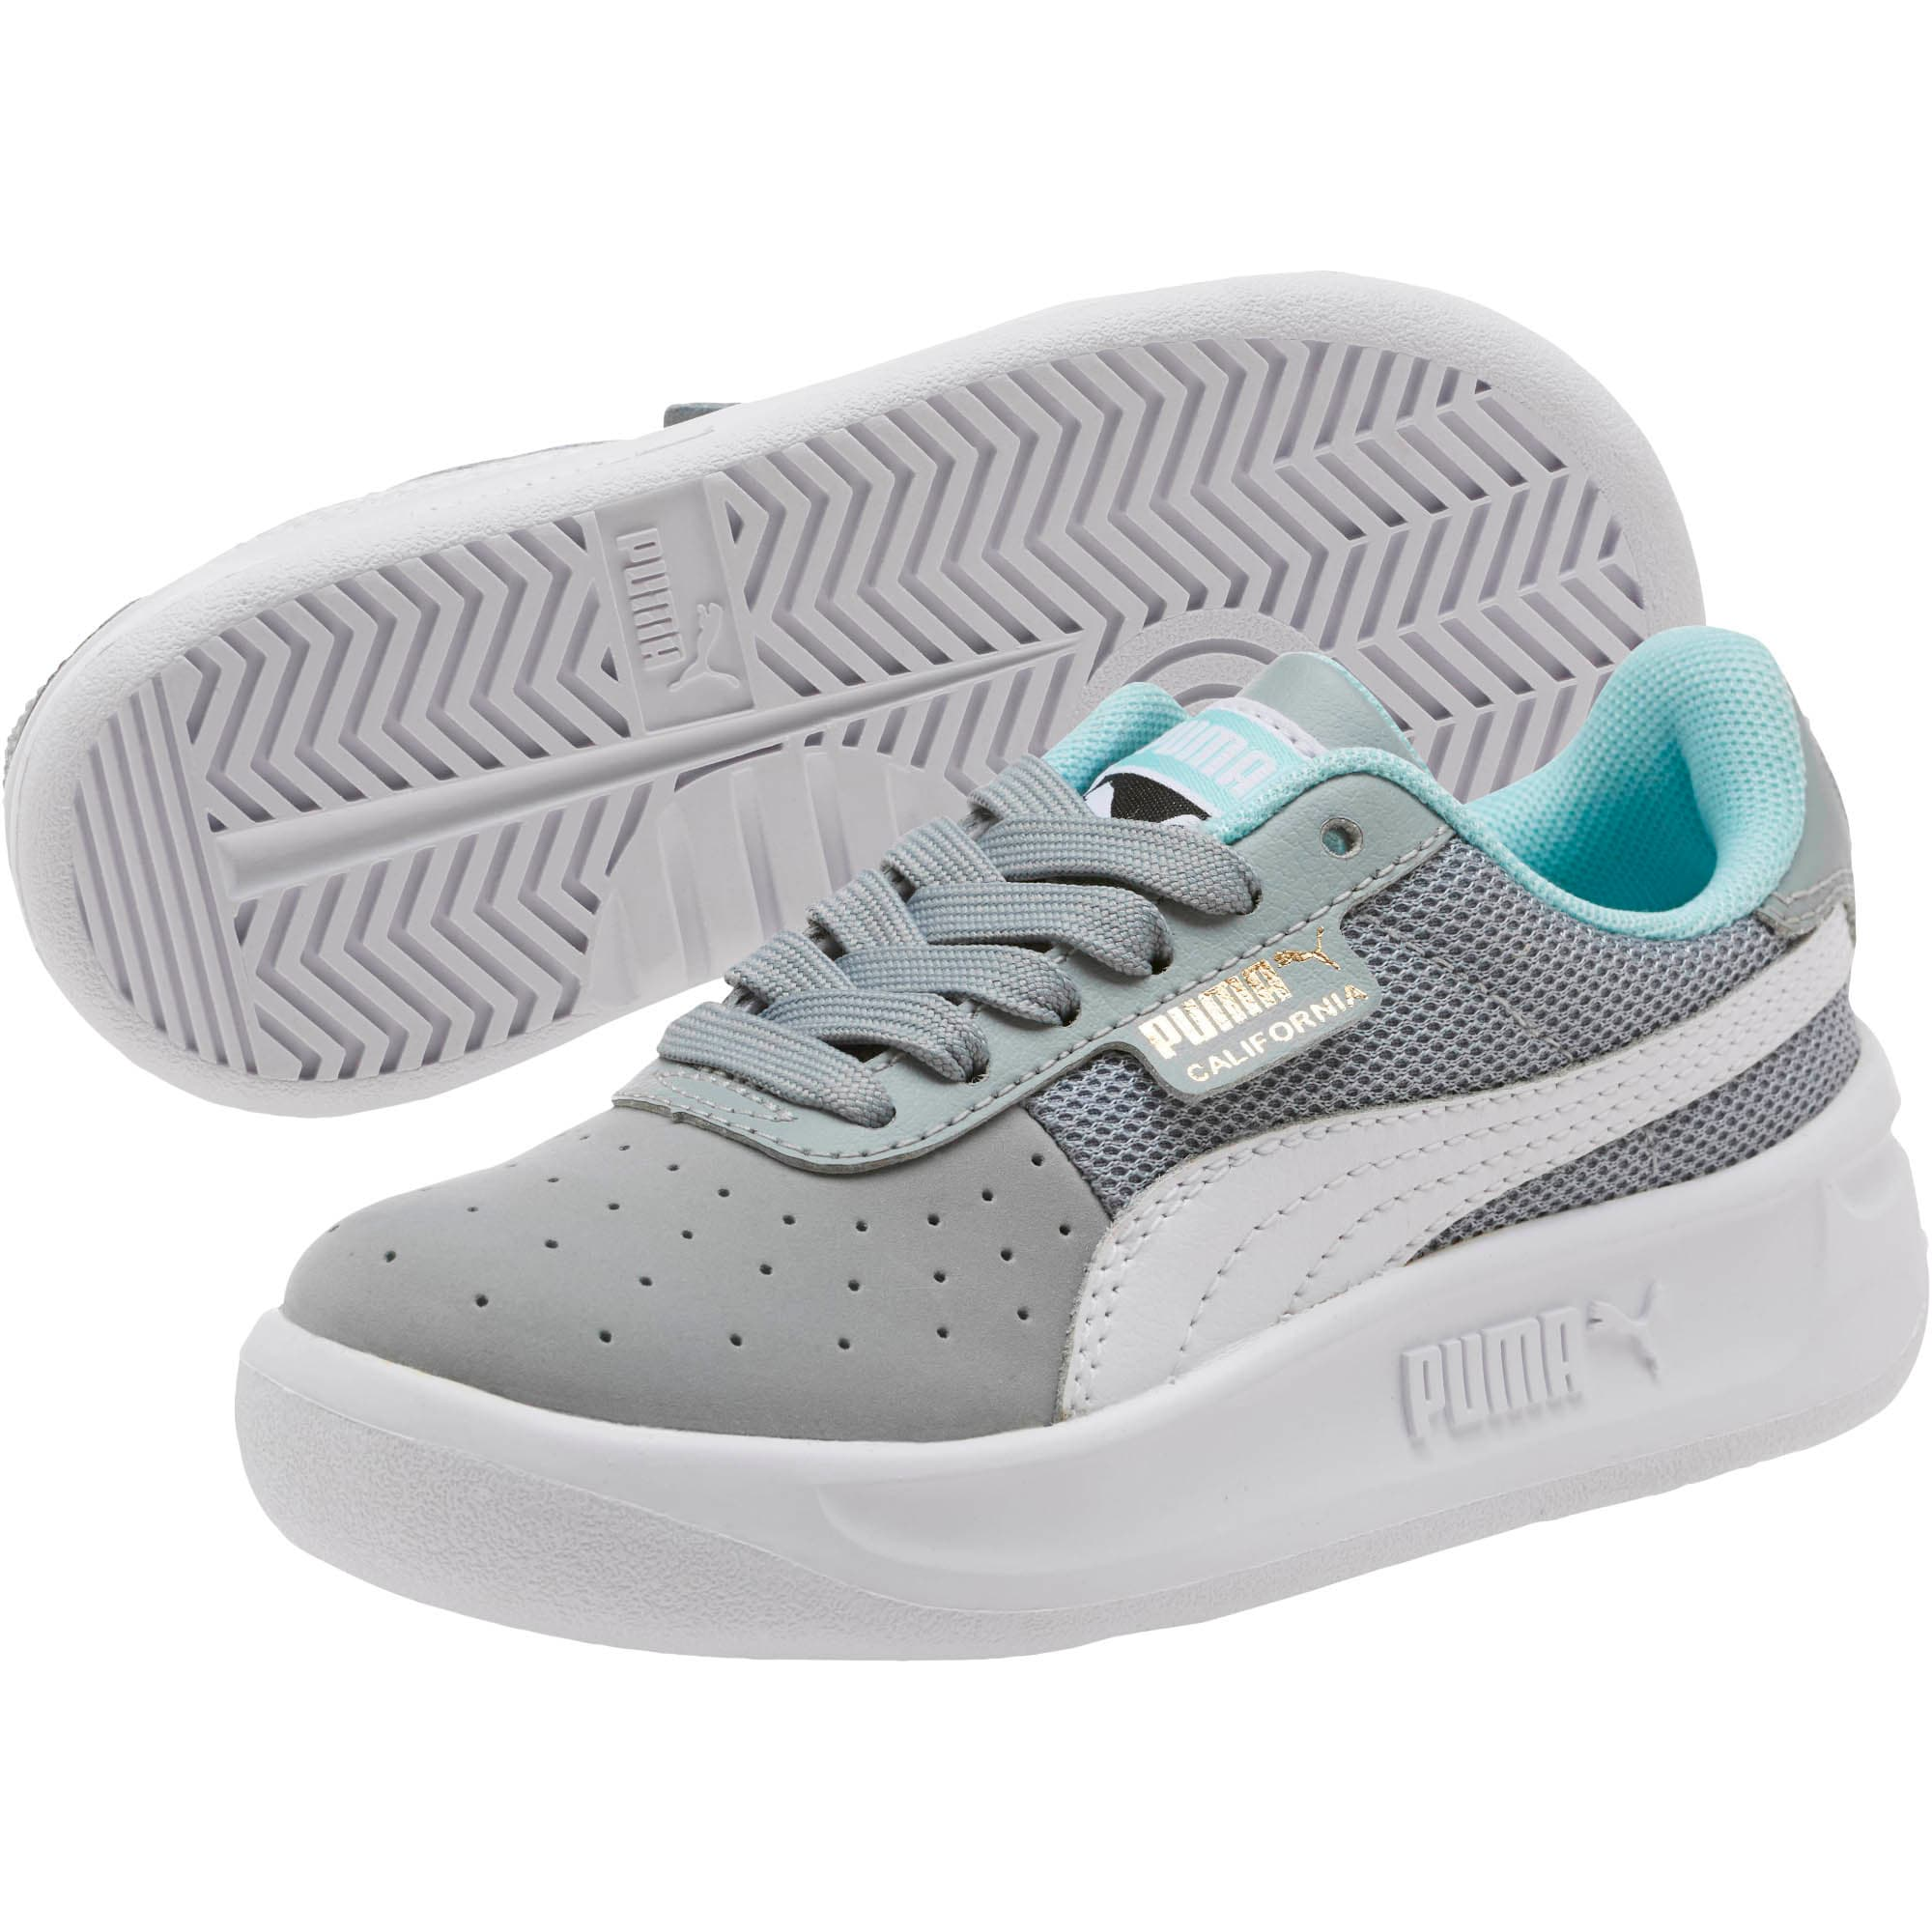 Thumbnail 2 of California Casual Little Kids' Shoes, Quarry-Puma White- Gold, medium